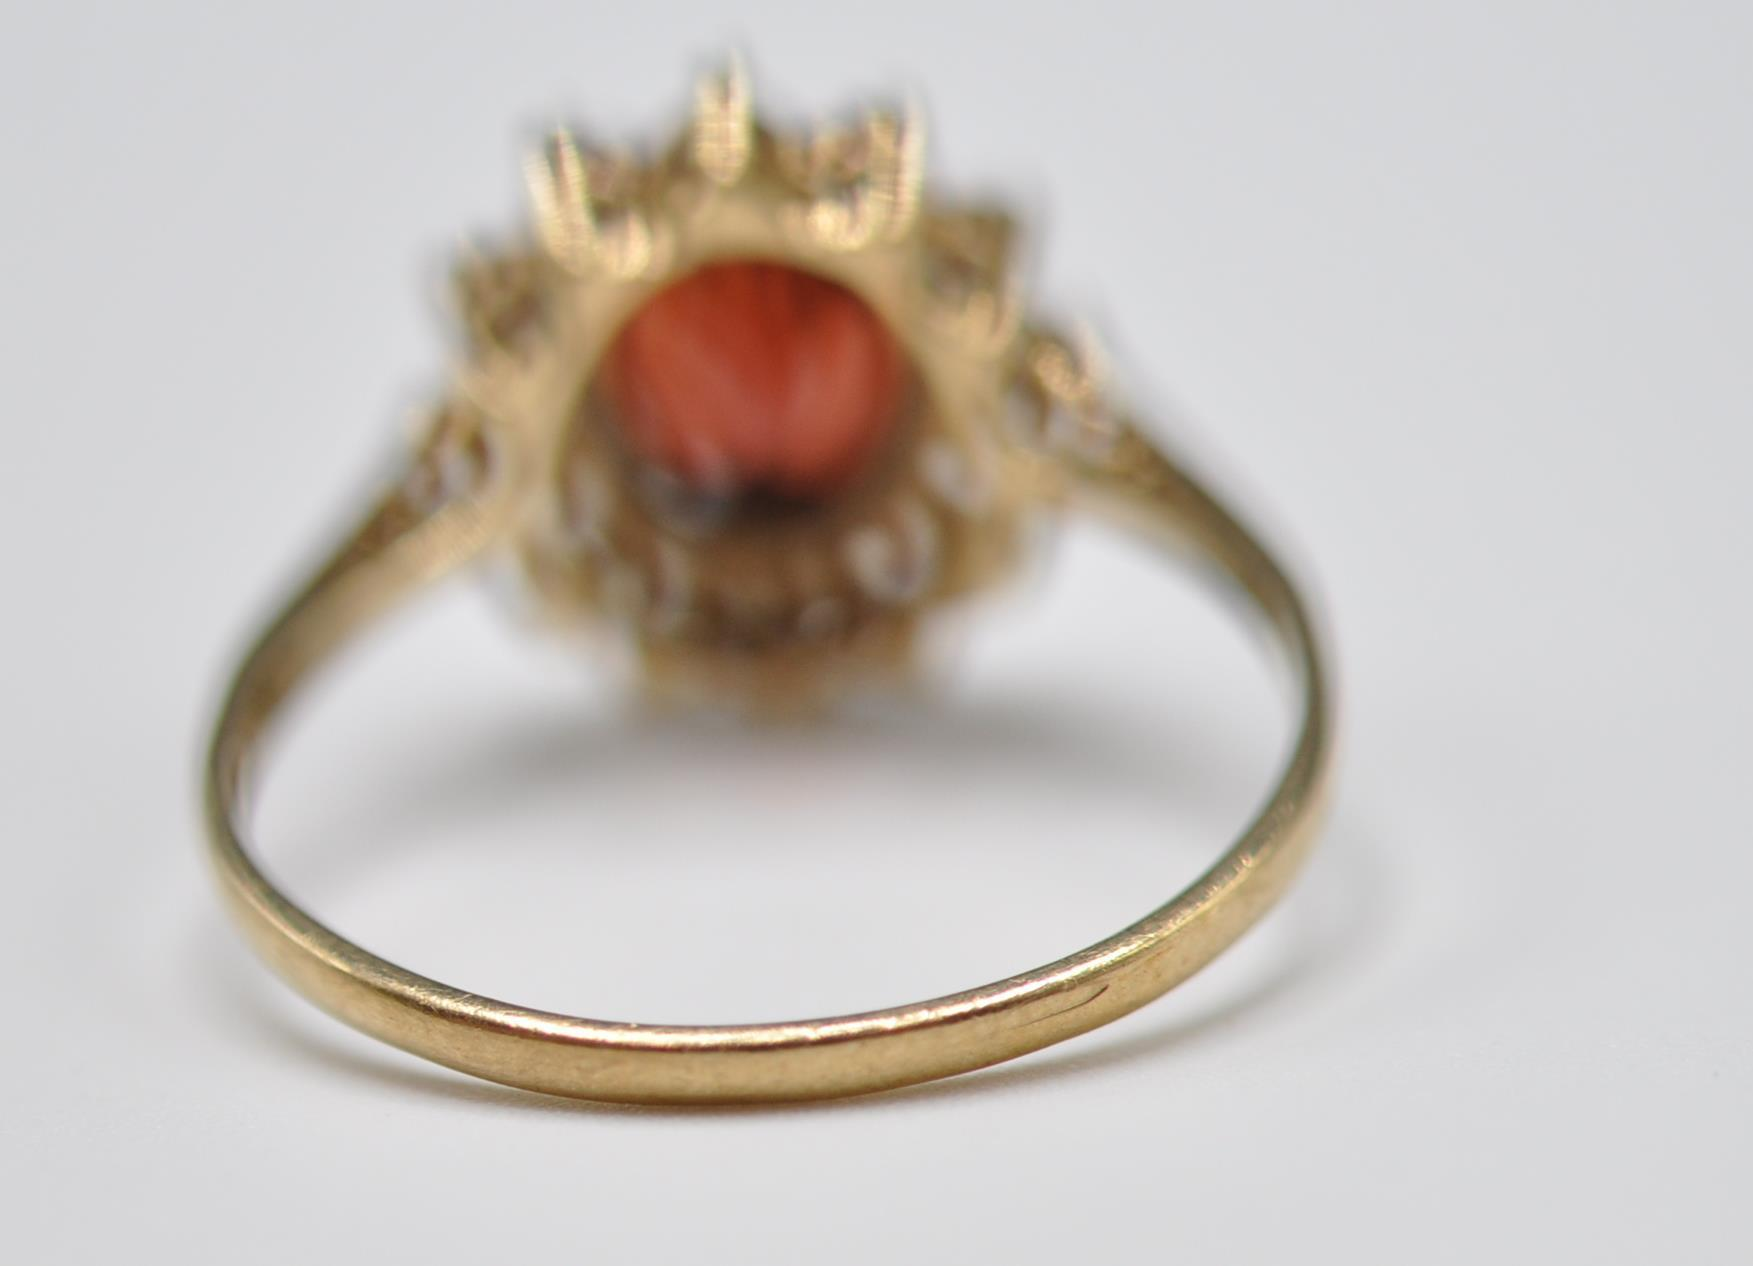 9CT GOLD RED AND WHITE STONE CLUSTER RING - Image 6 of 9